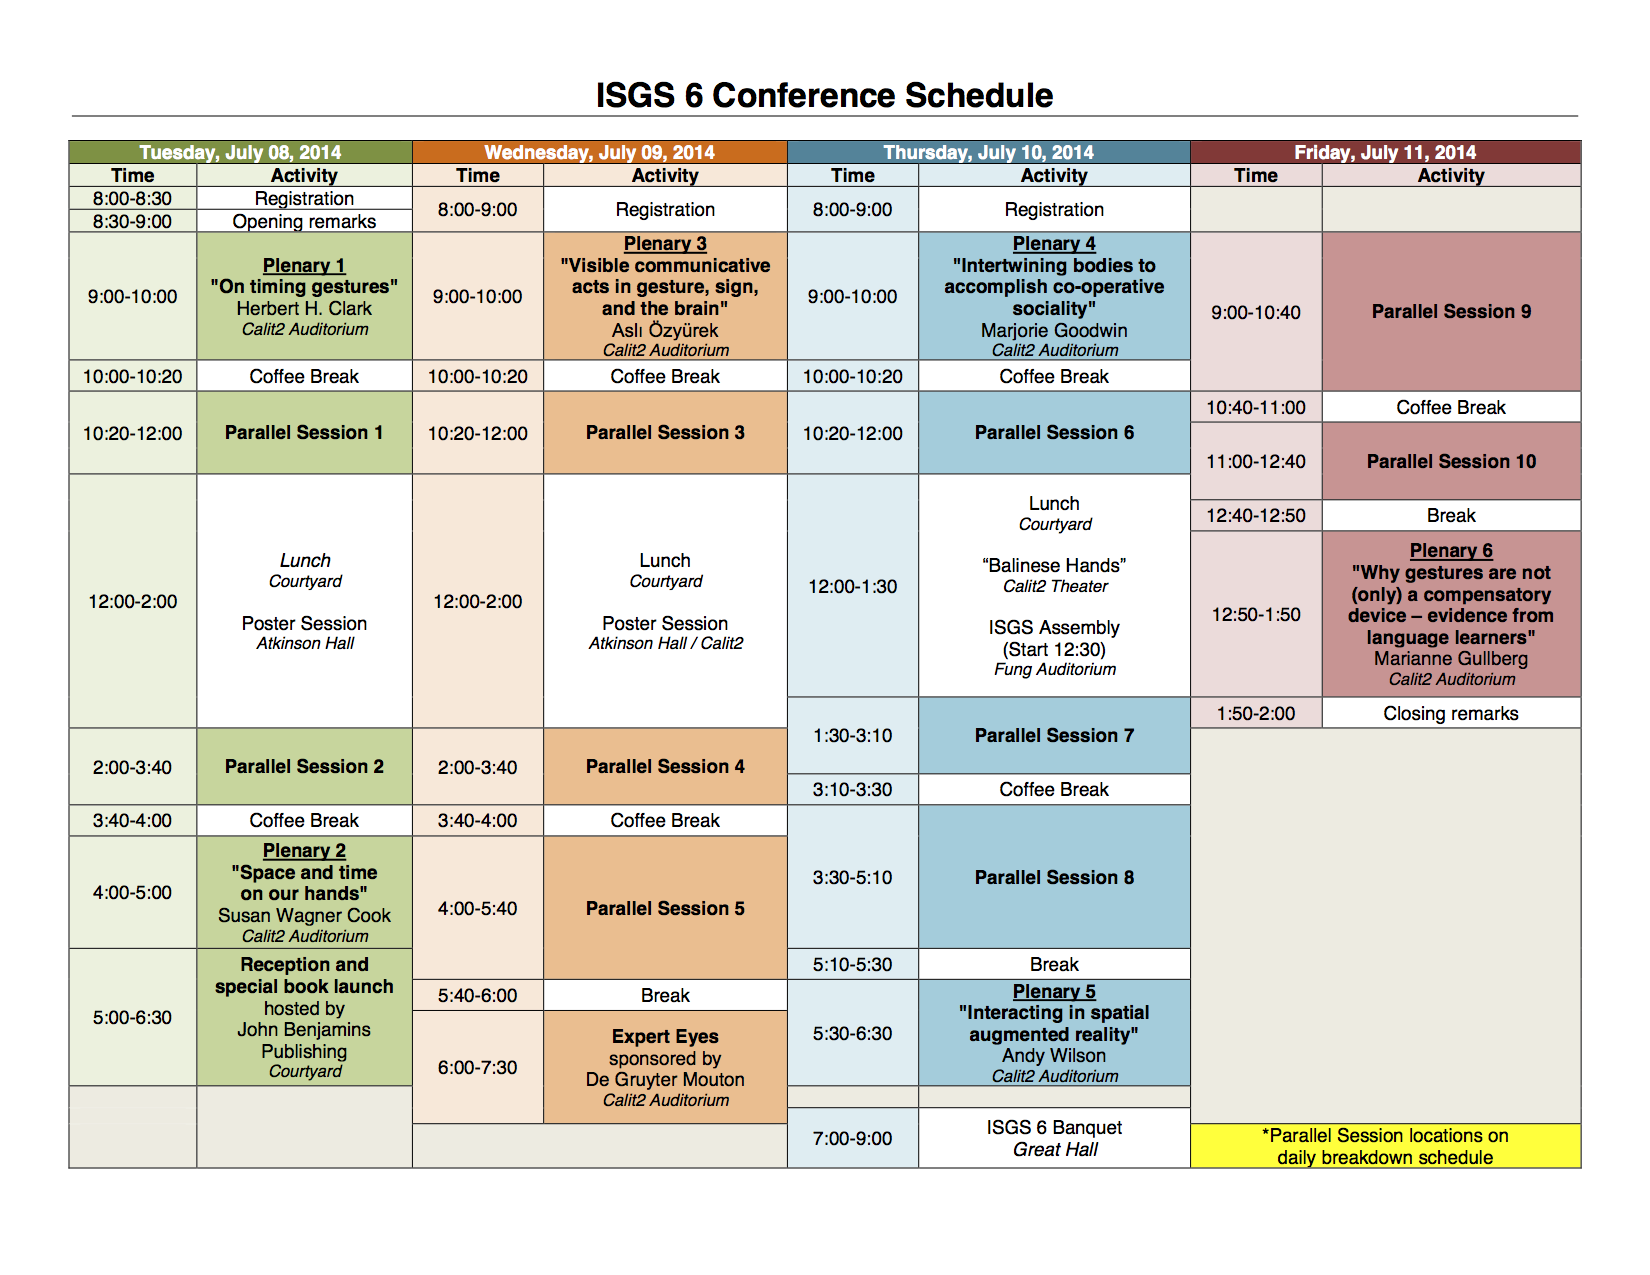 ISGS_Schedule.Posted